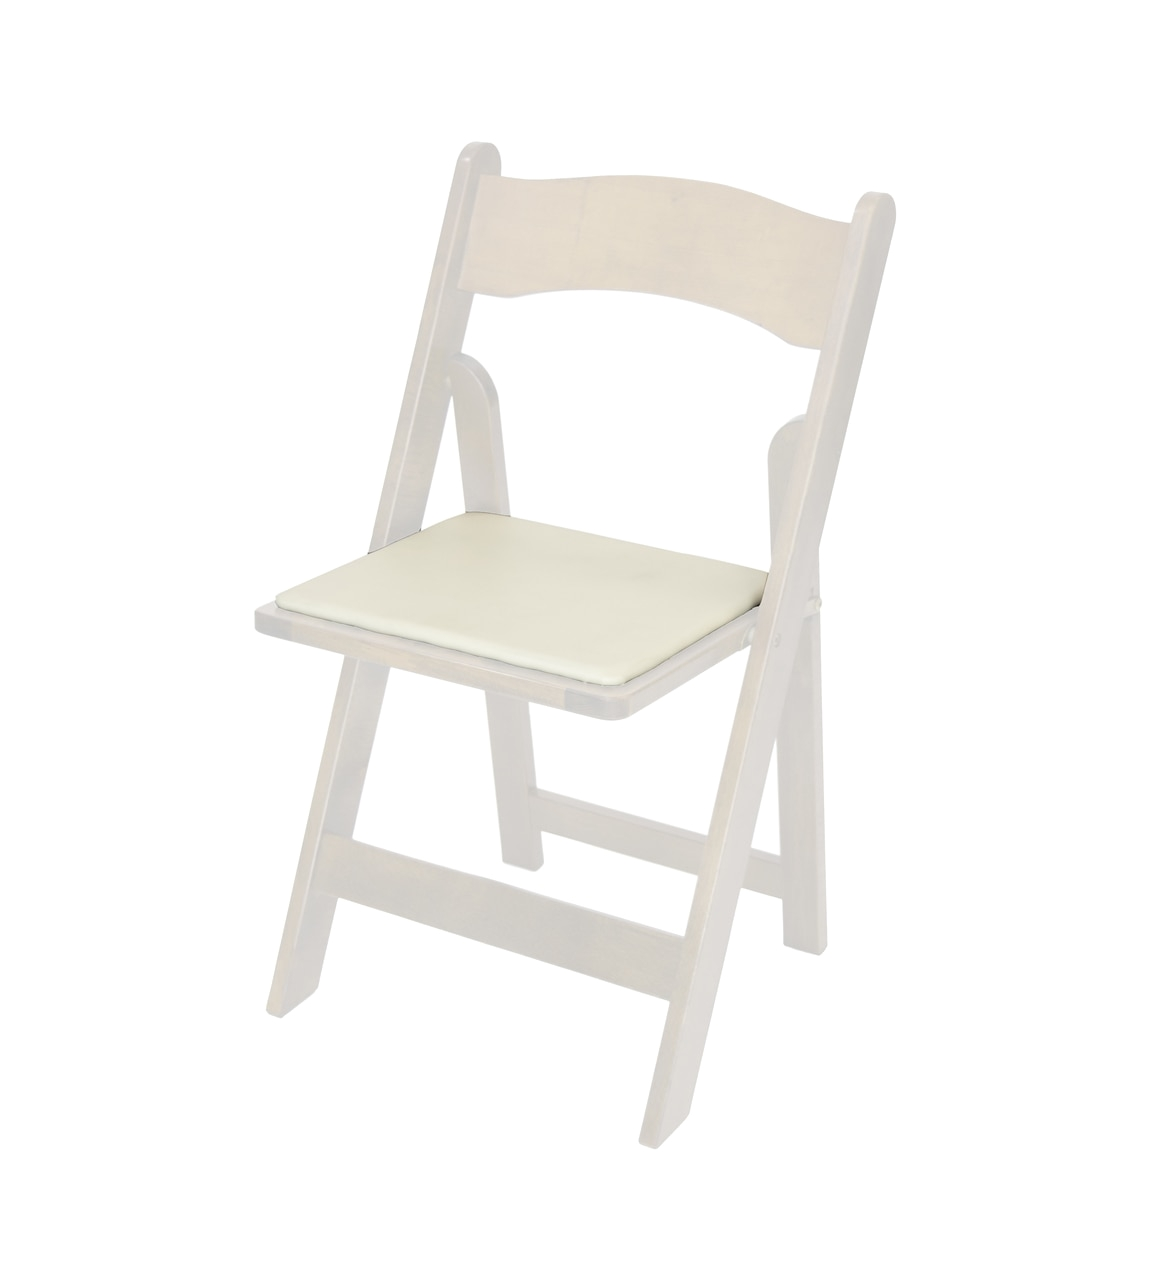 Brown Wooden Chairs for Rent Replacement Vinyl Seat Pad for Wood Folding Chairs